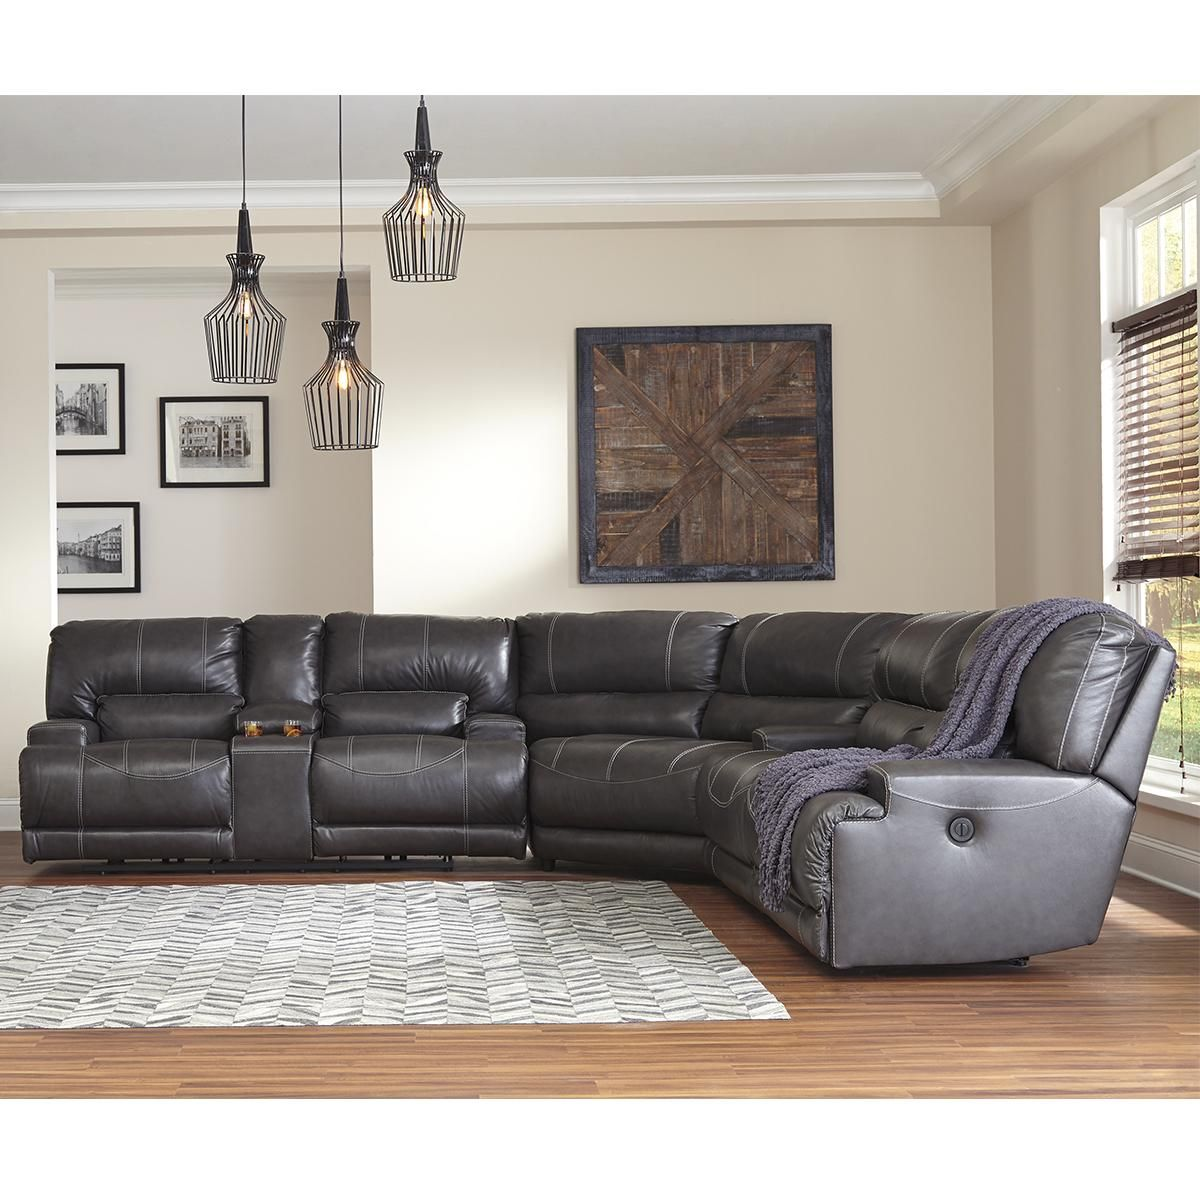 Millennium Mccaskill 3 Piece Leather Reclining Sectional Set In Gray Nebraska In 2020 Power Reclining Sectional Sofa Leather Reclining Sectional Reclining Sectional